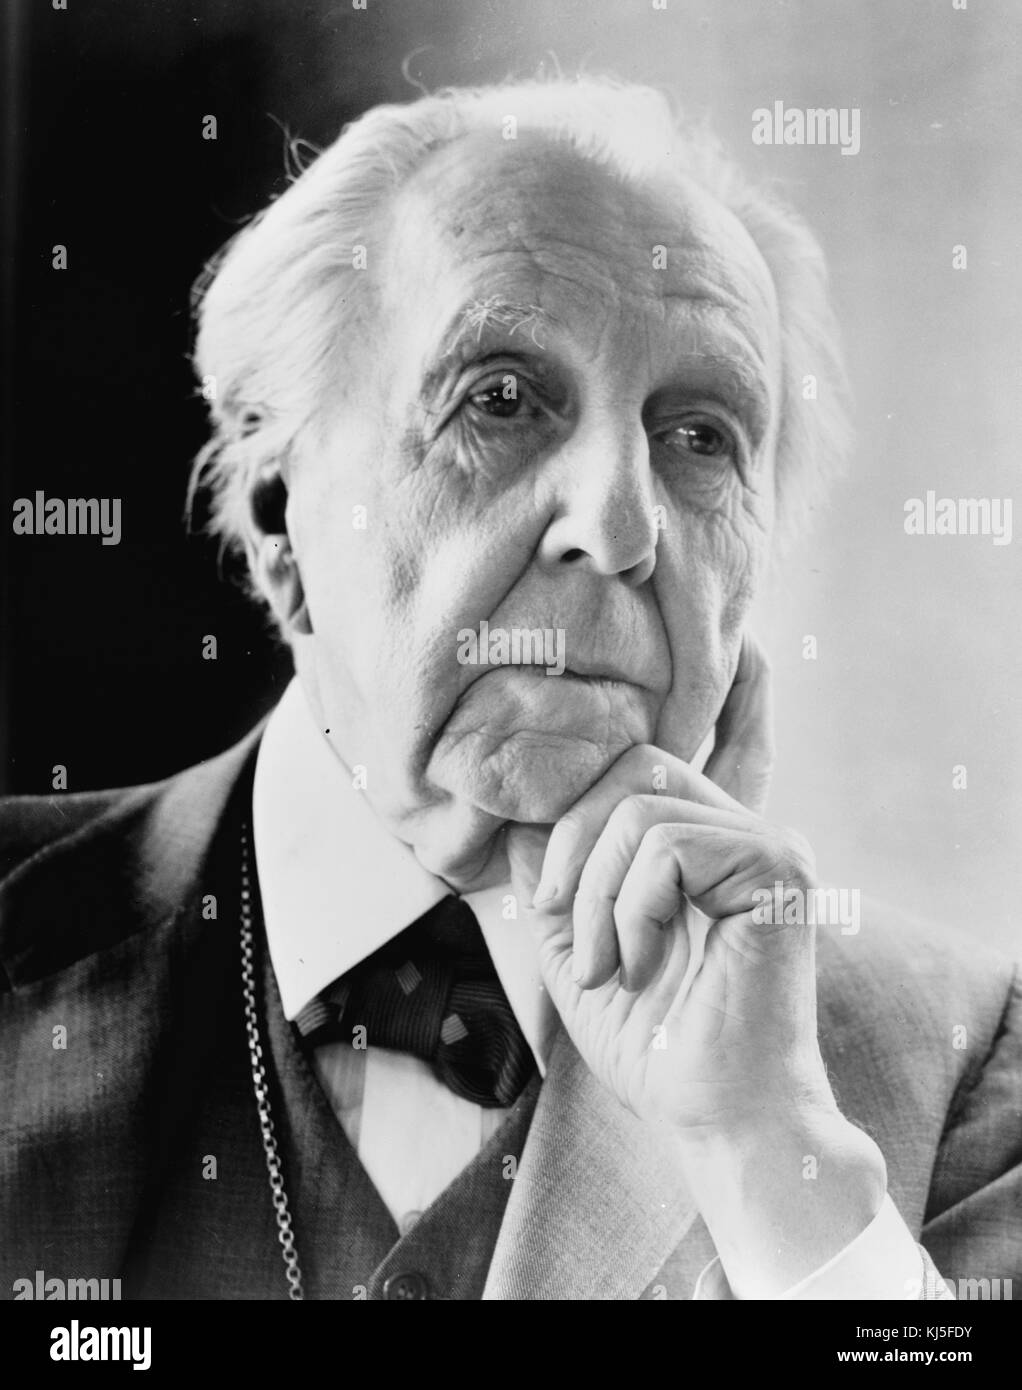 Frank lloyd wright born frank lincoln wright june 8 - Frank lloyd wright structures ...